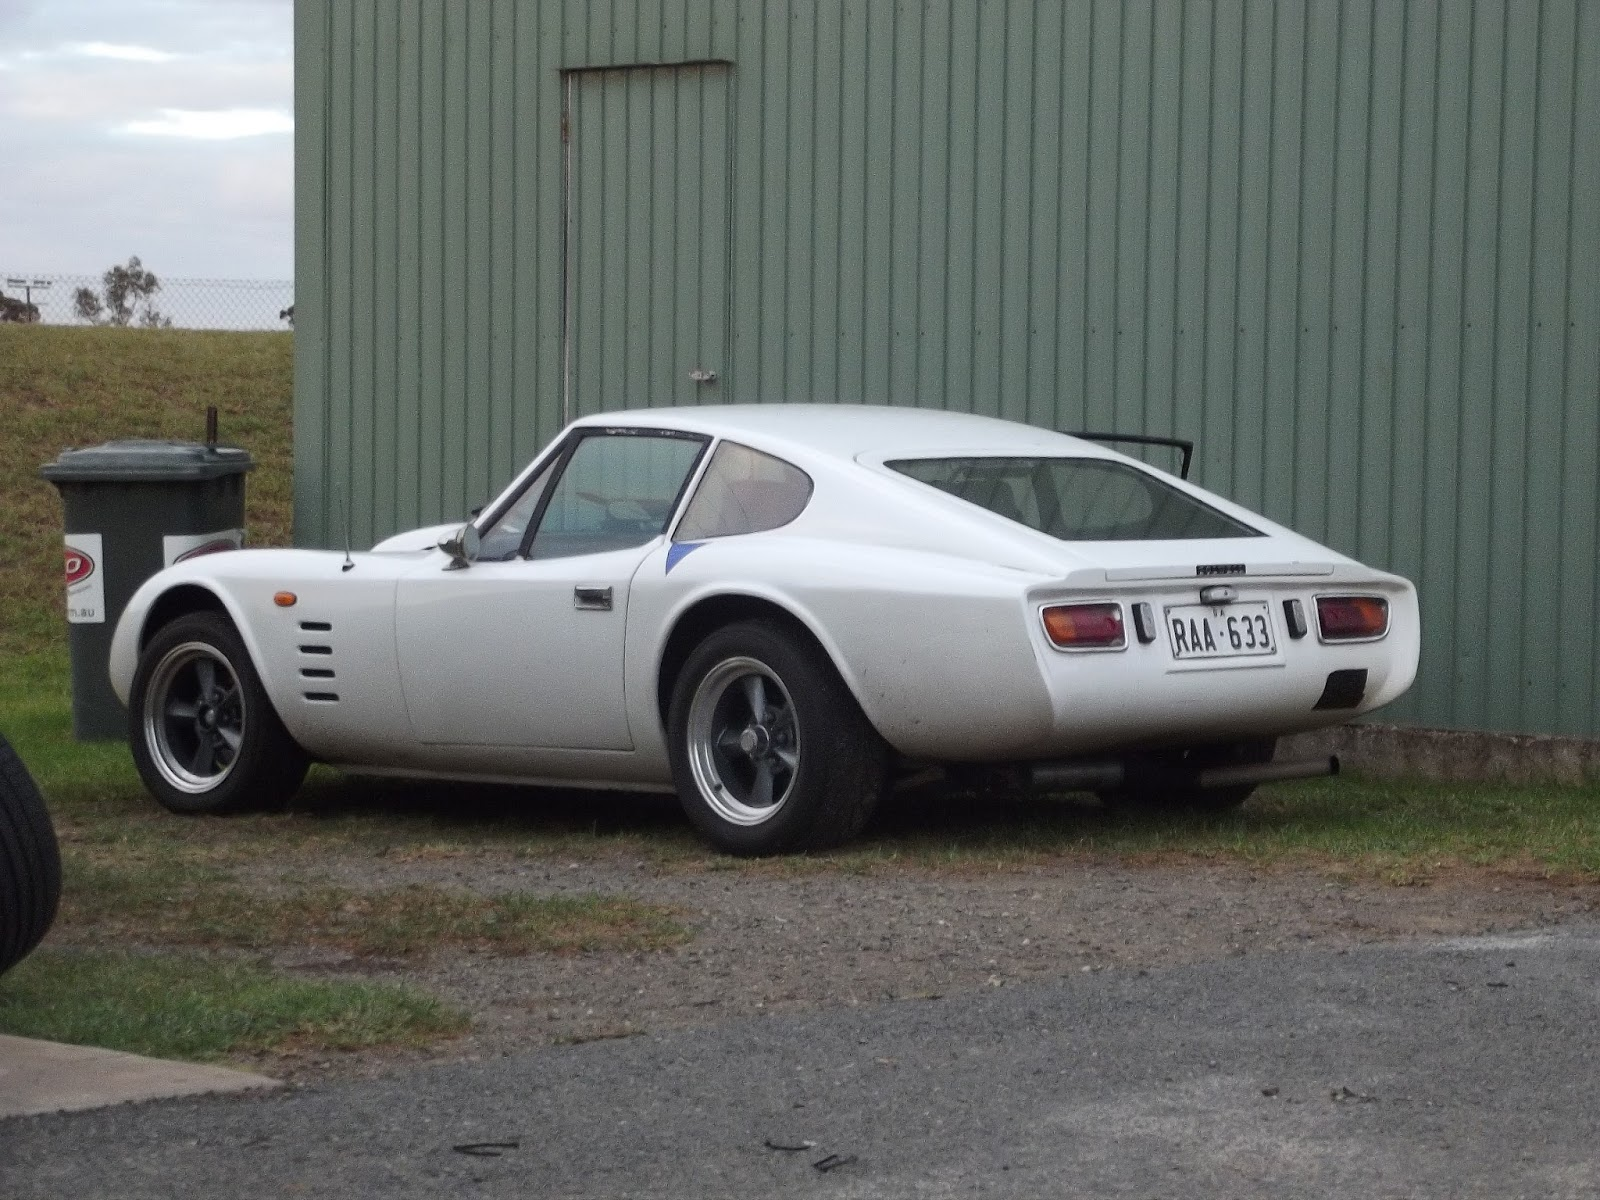 Bolly Blog May - Drb sports cars queensland